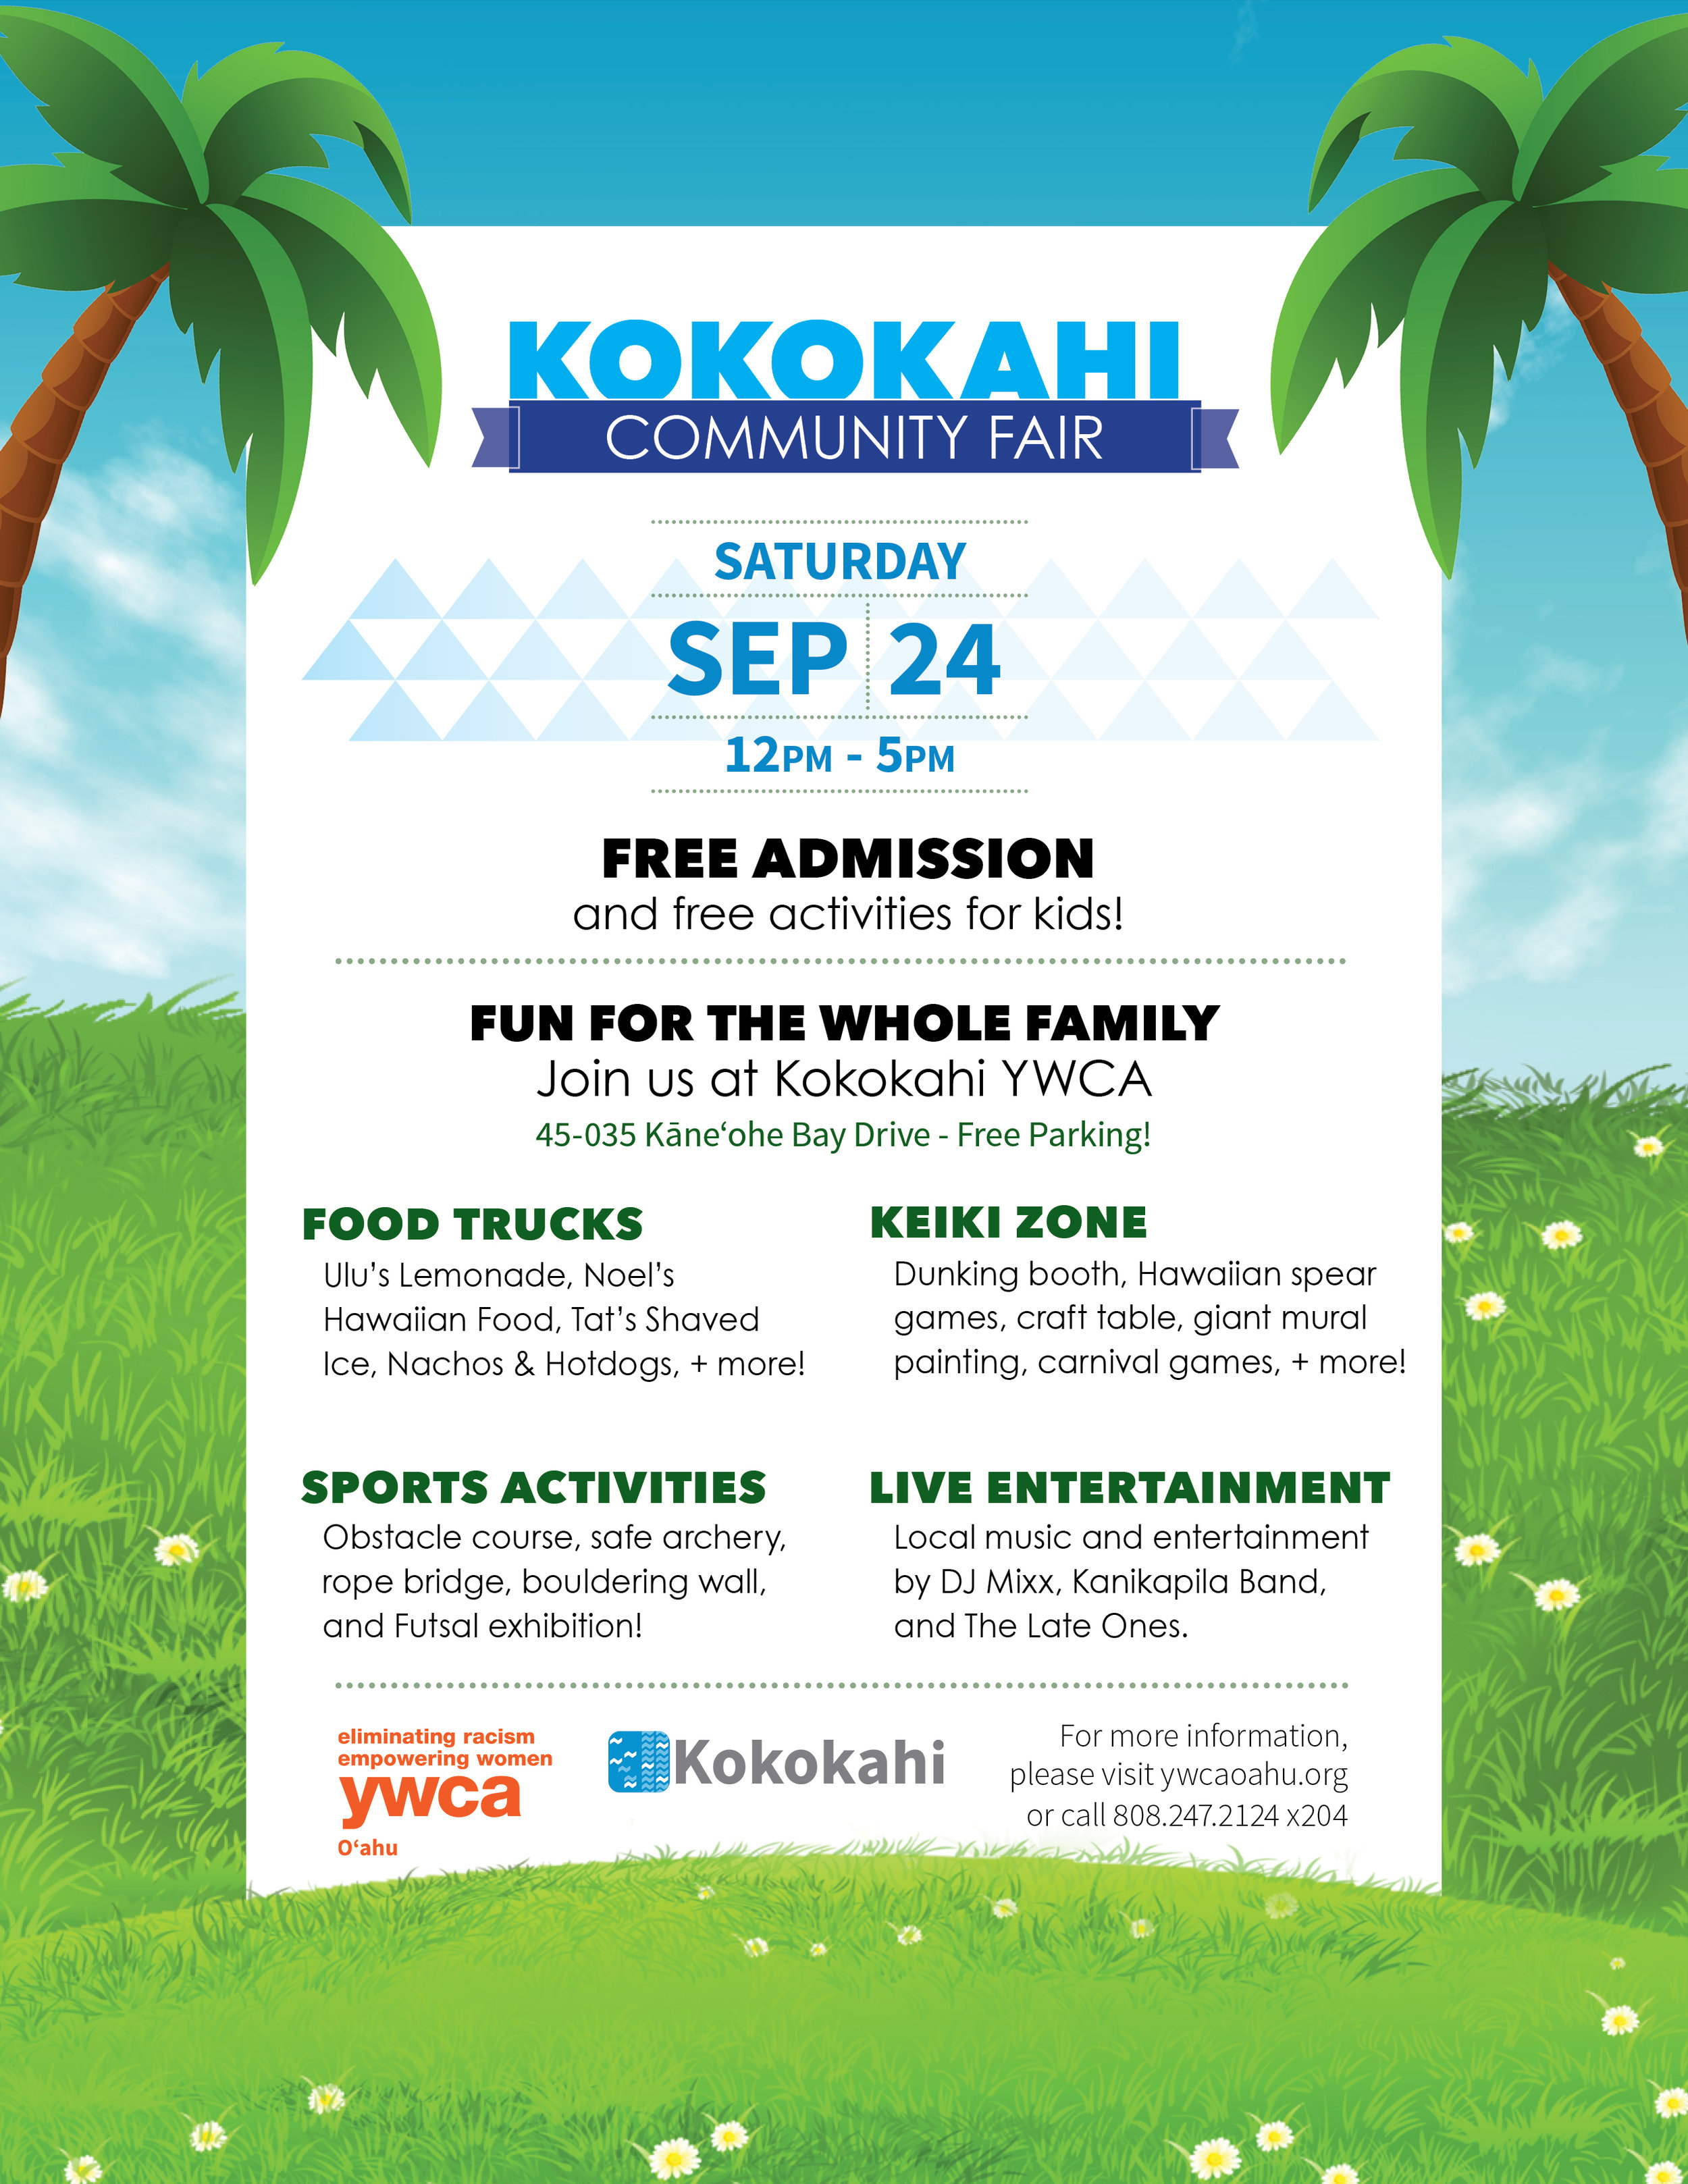 Kokokahi Community Fair 2016